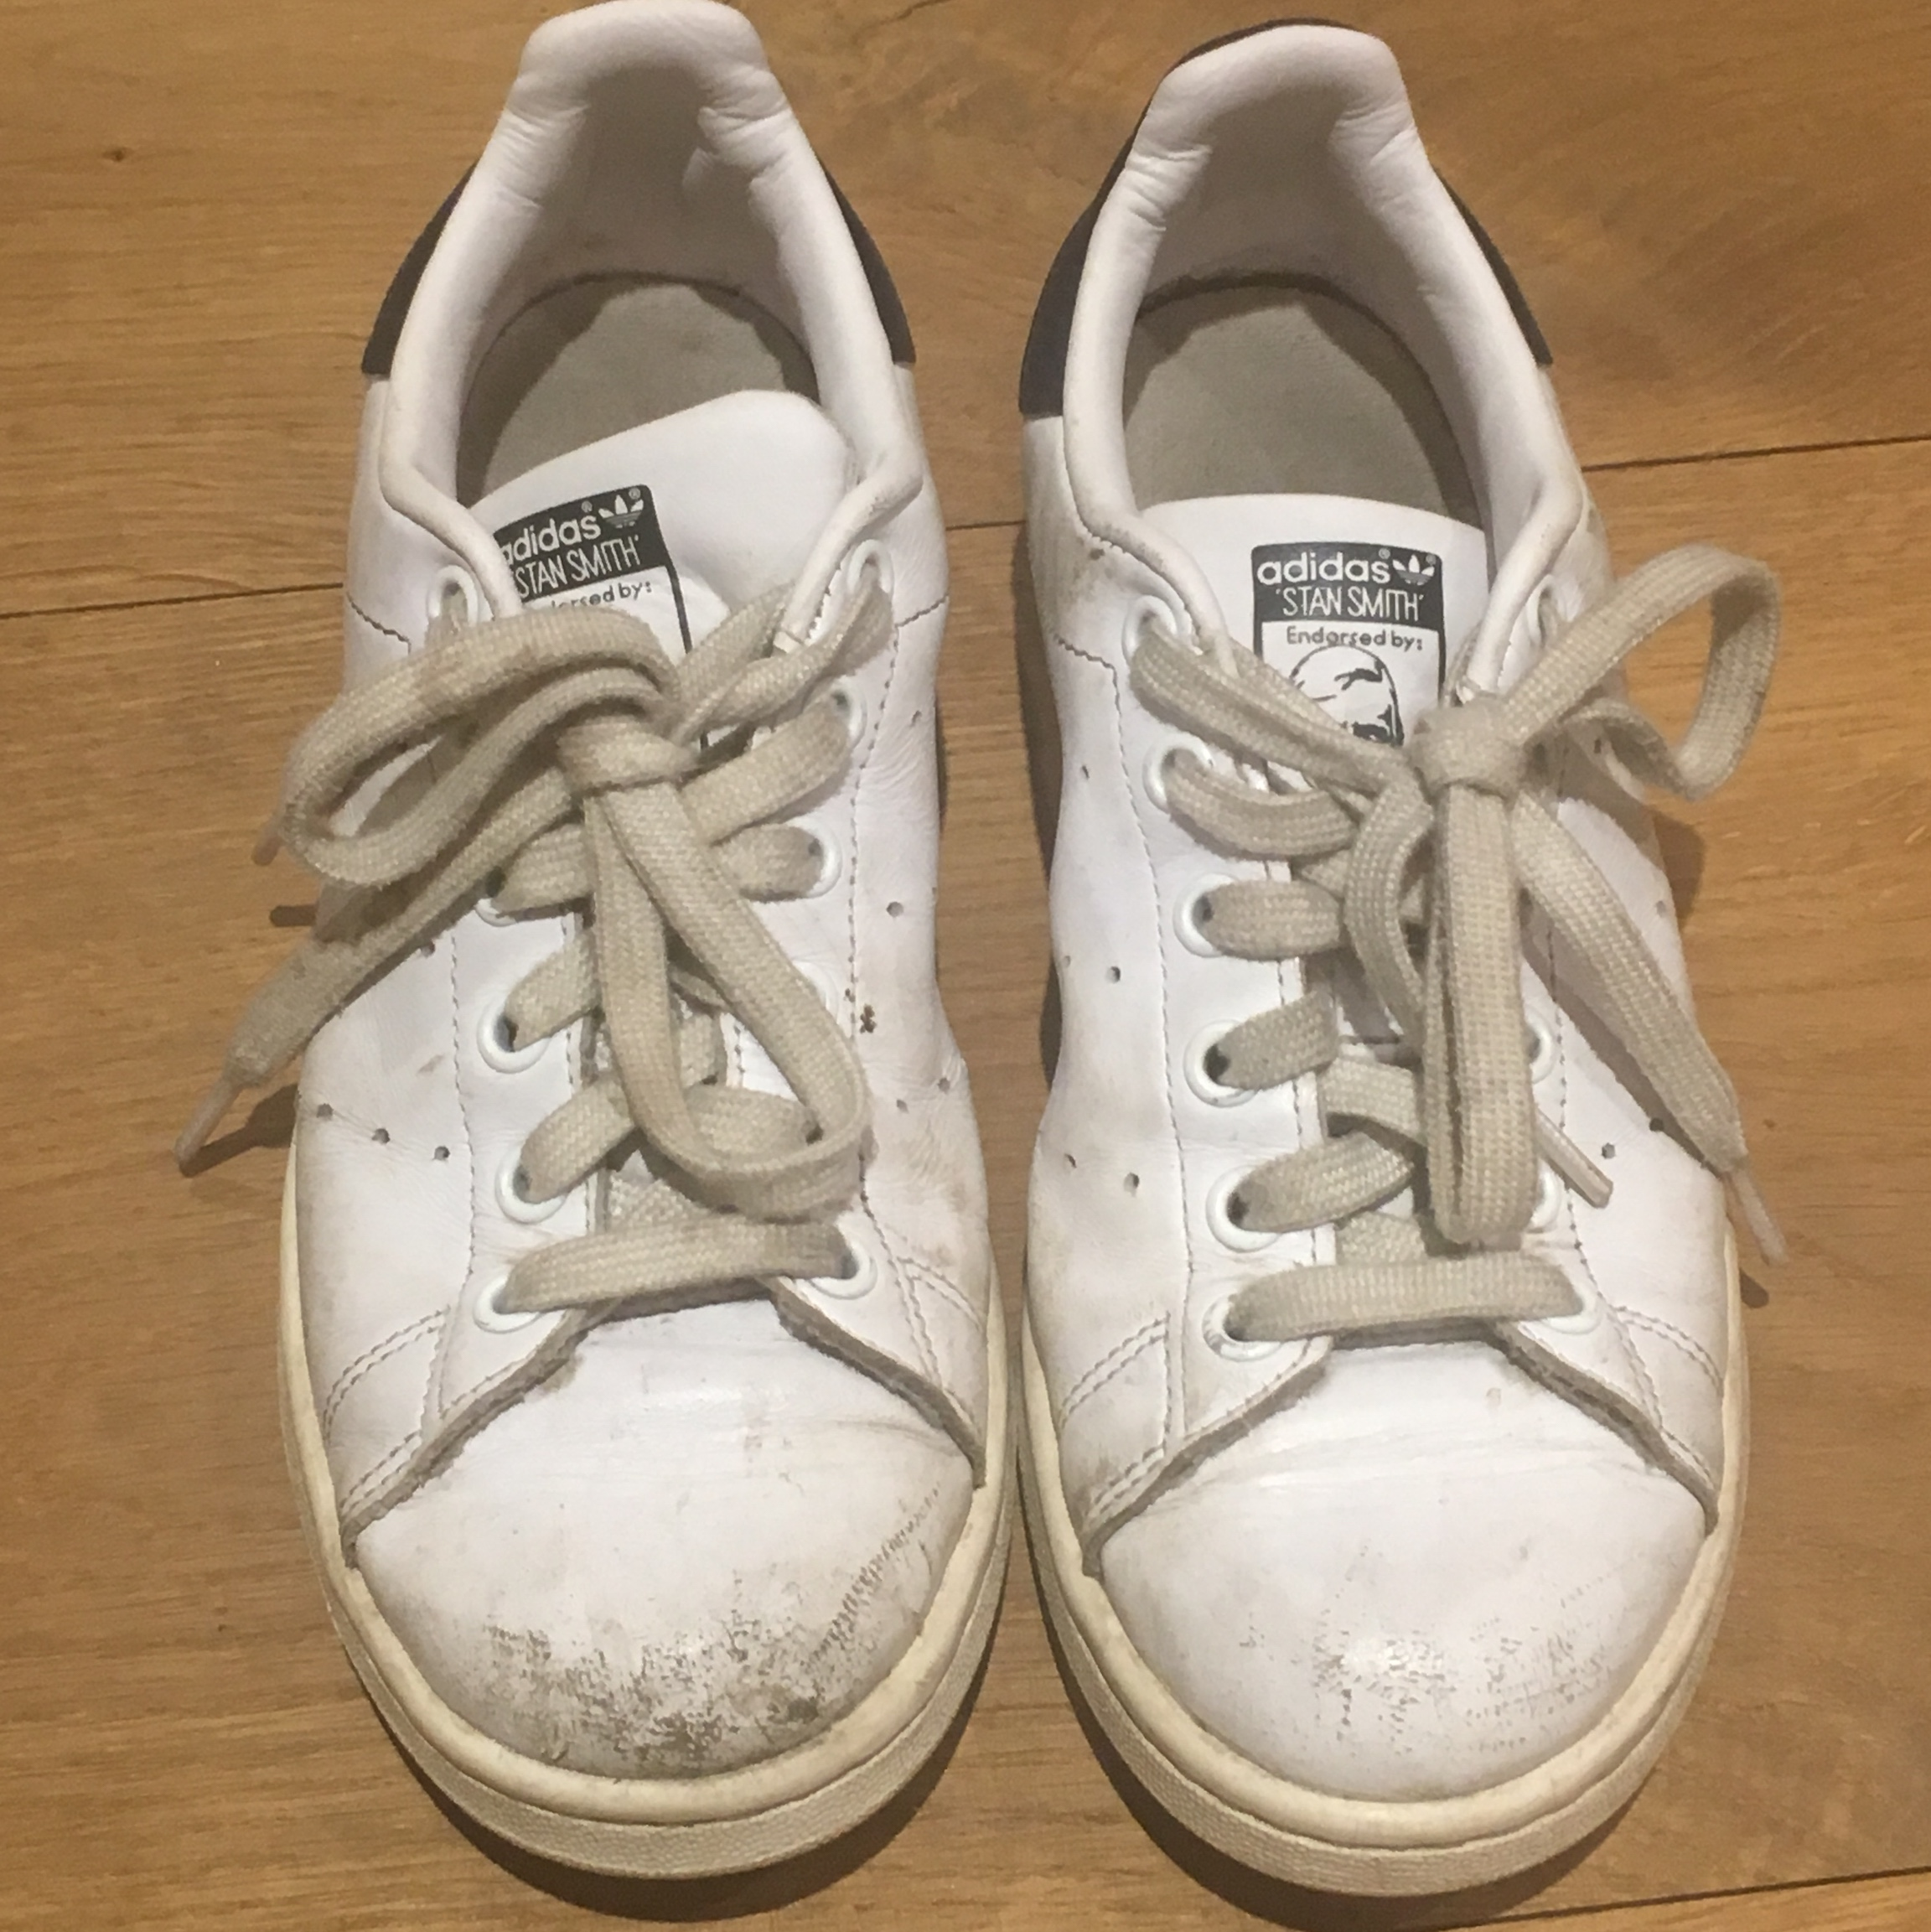 Old White Adidas Stan smiths with navy